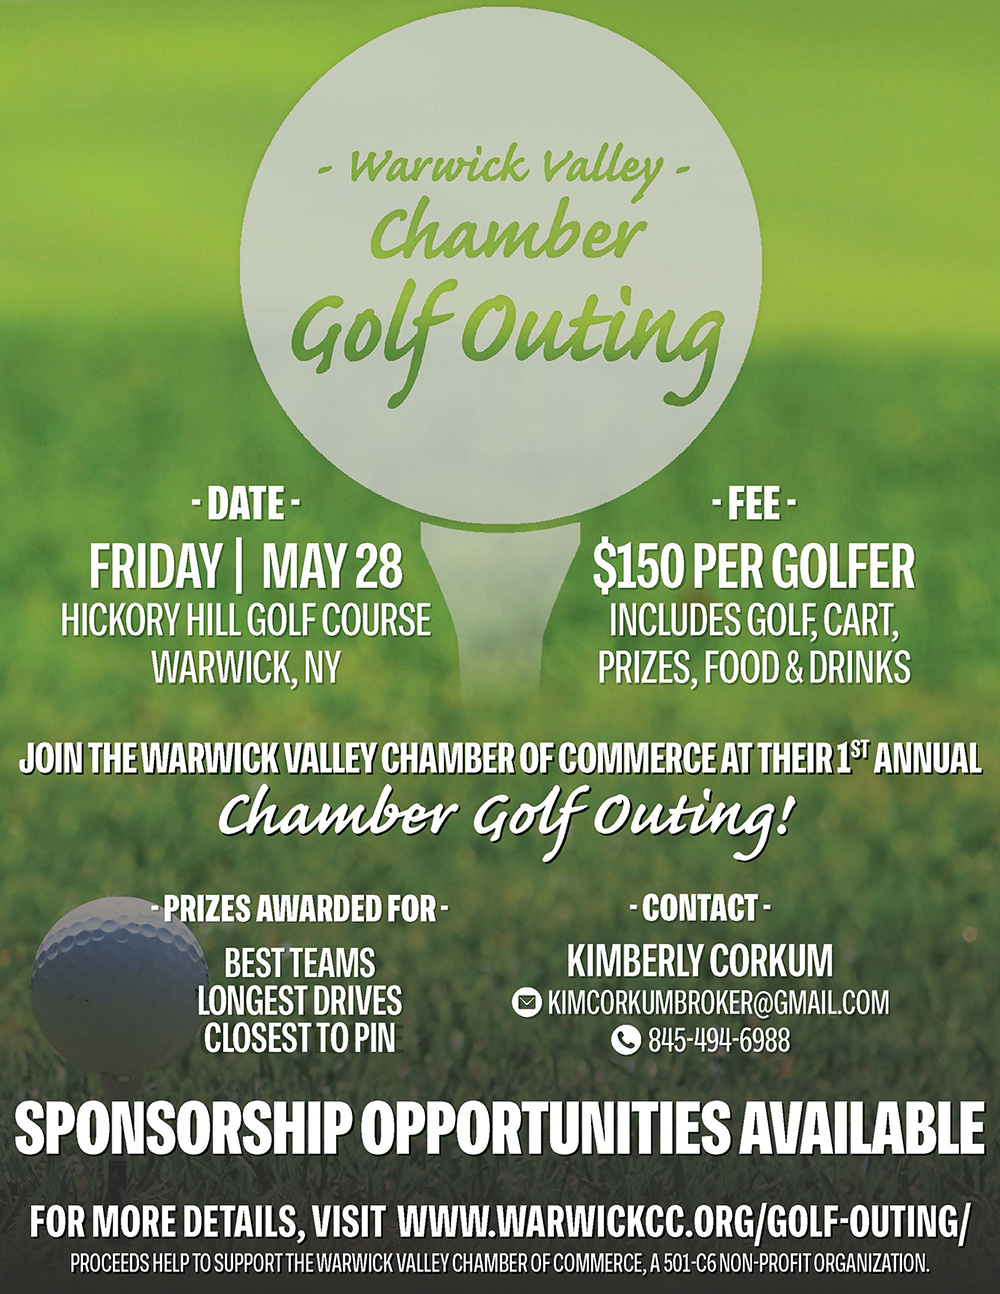 WVCC Golf Outing Flyer.1